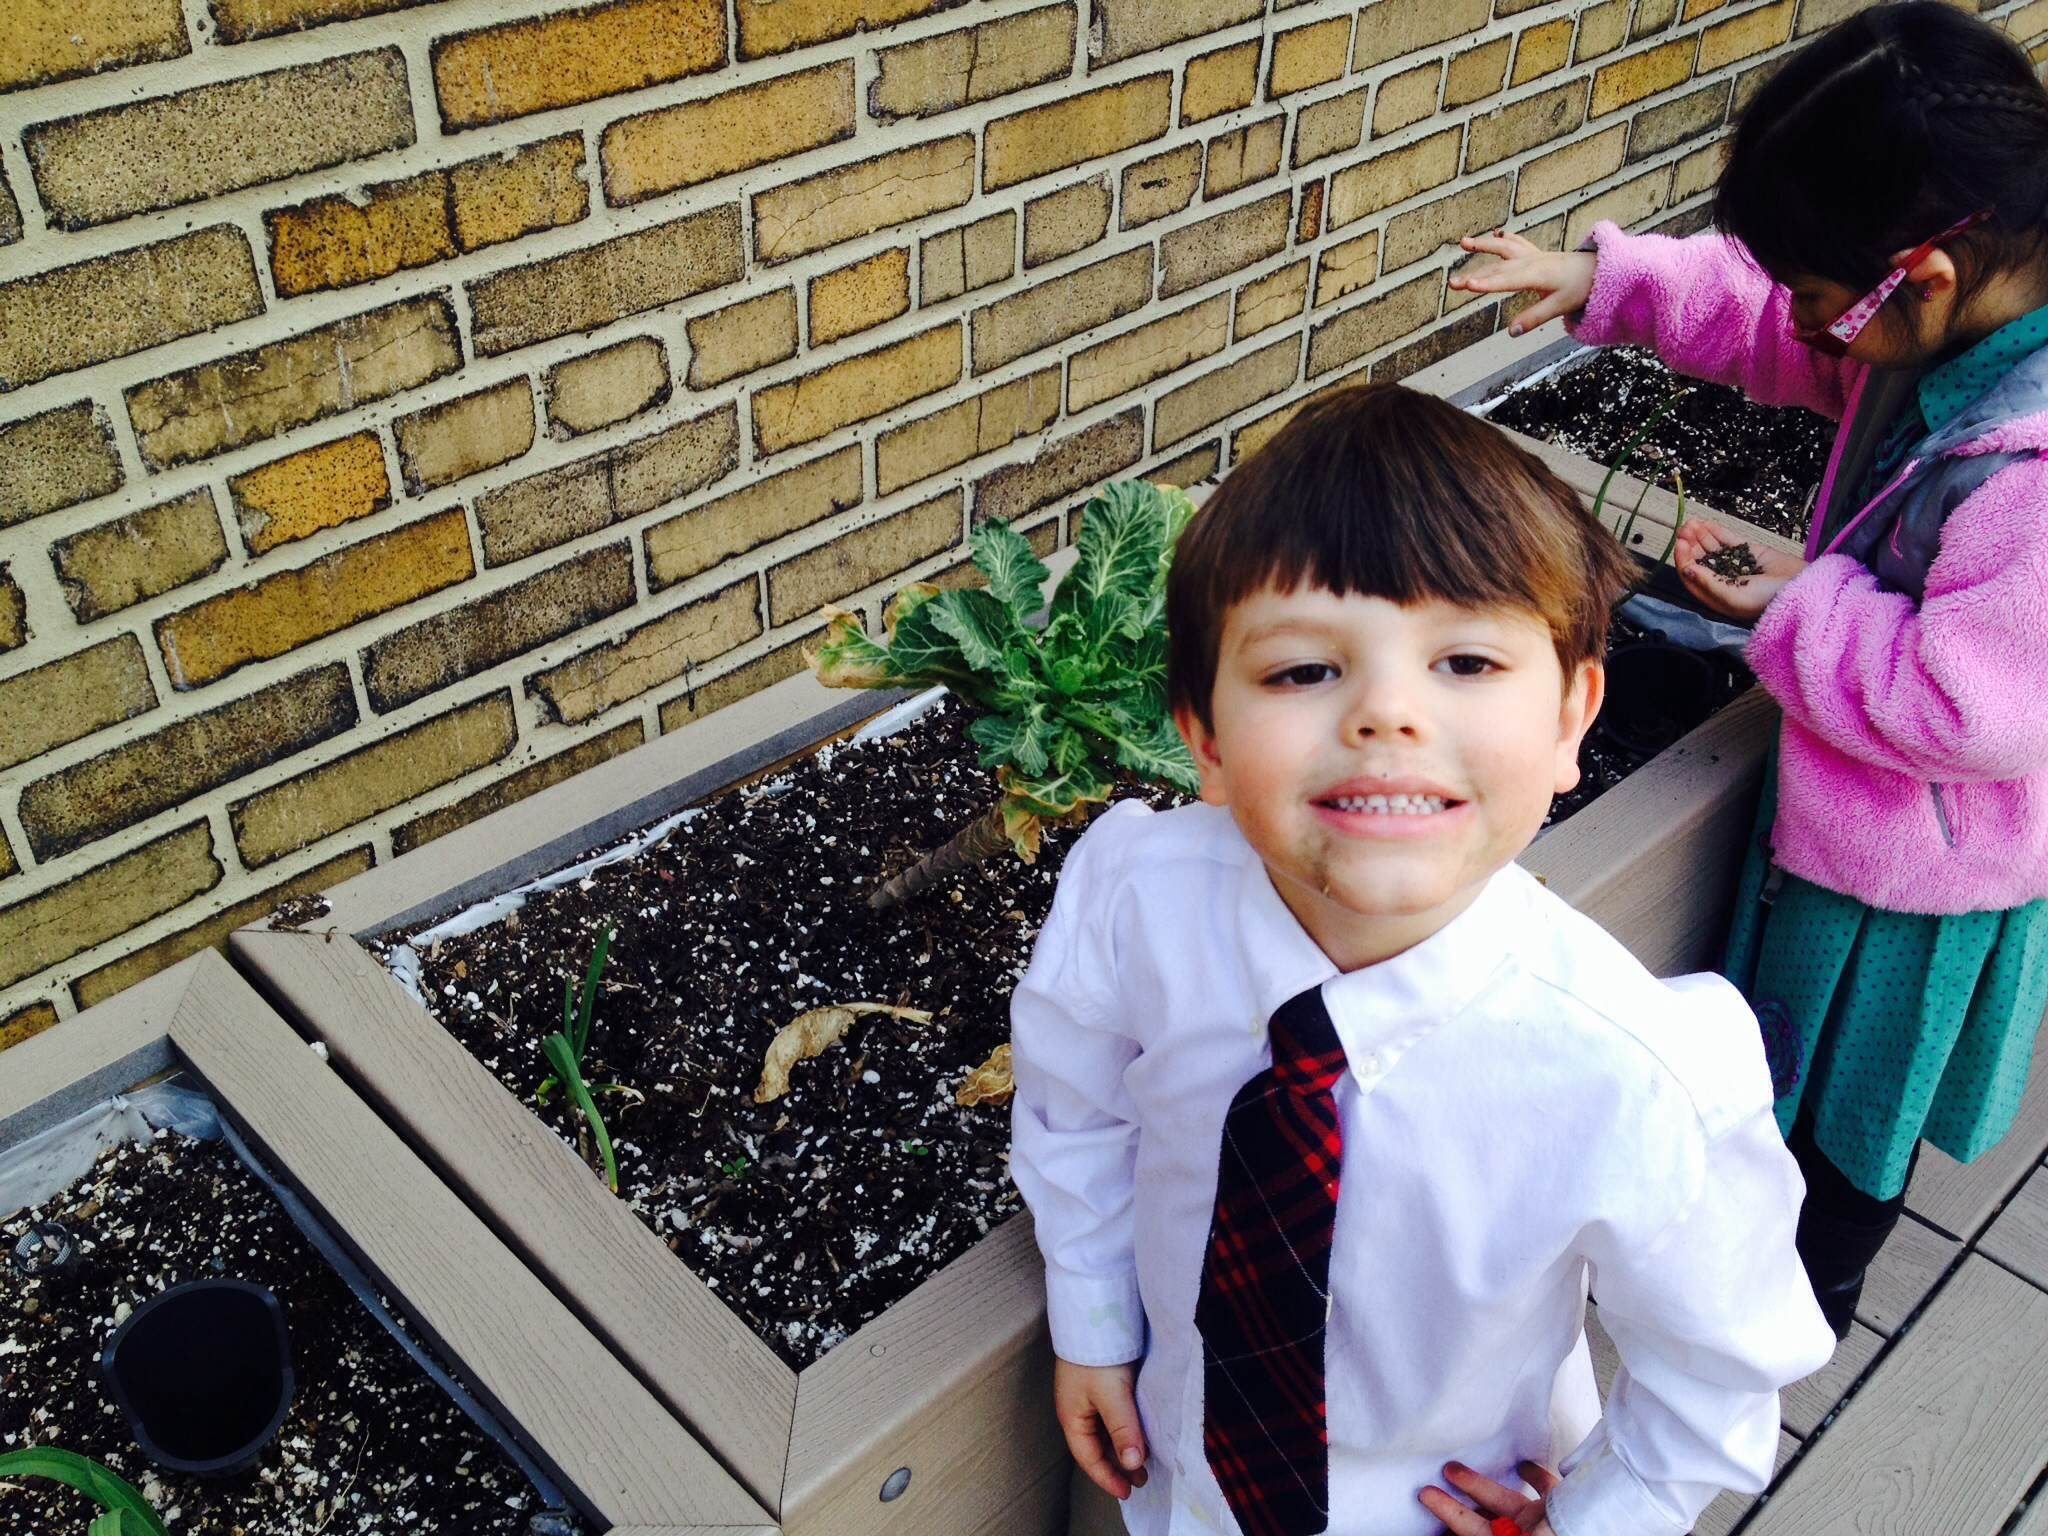 one of our red rabbit gardening clubs learned that a gardener is